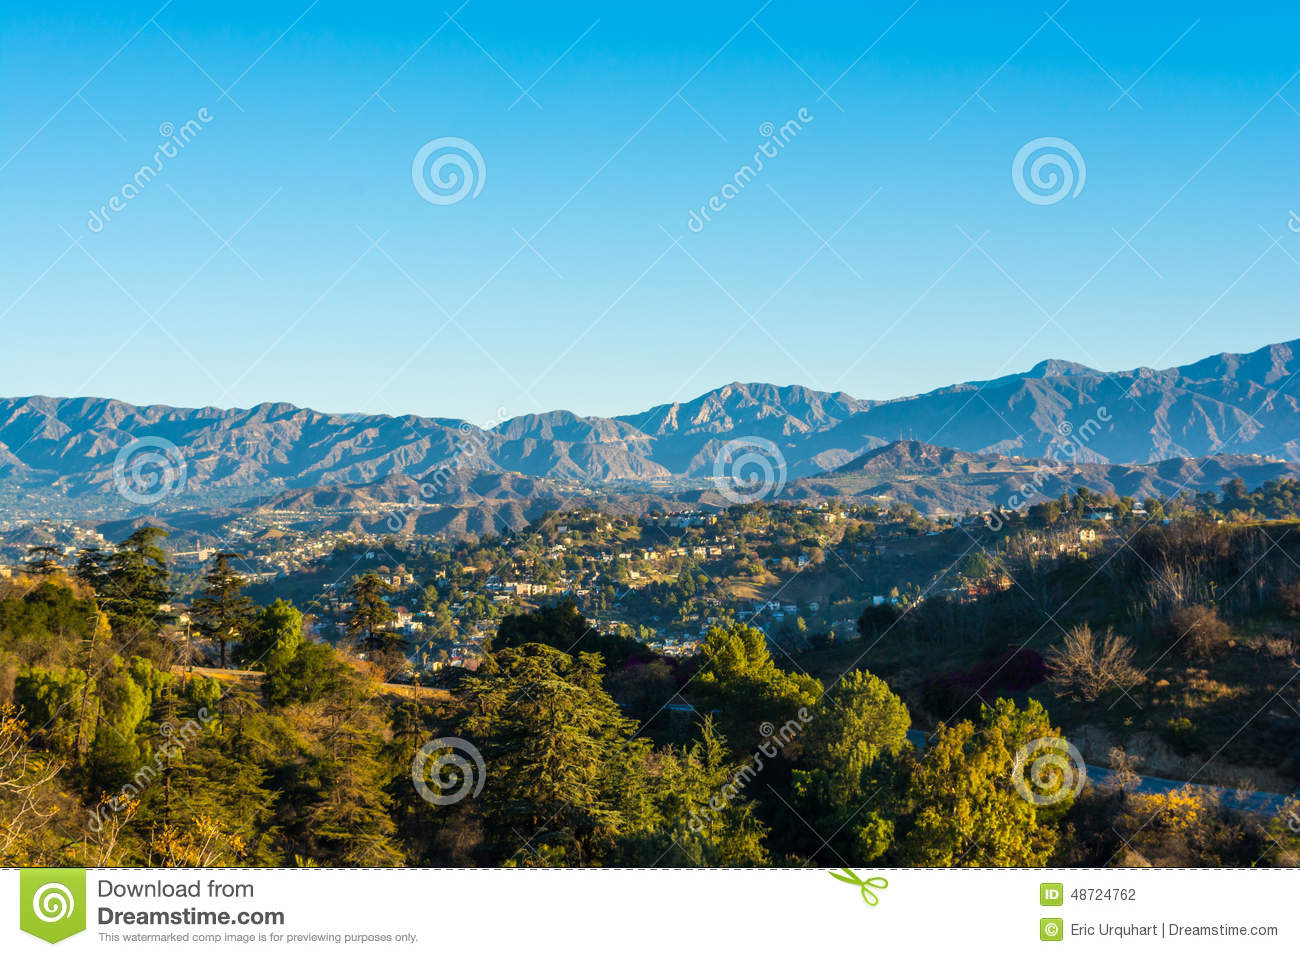 San Gabriel Mountains 2